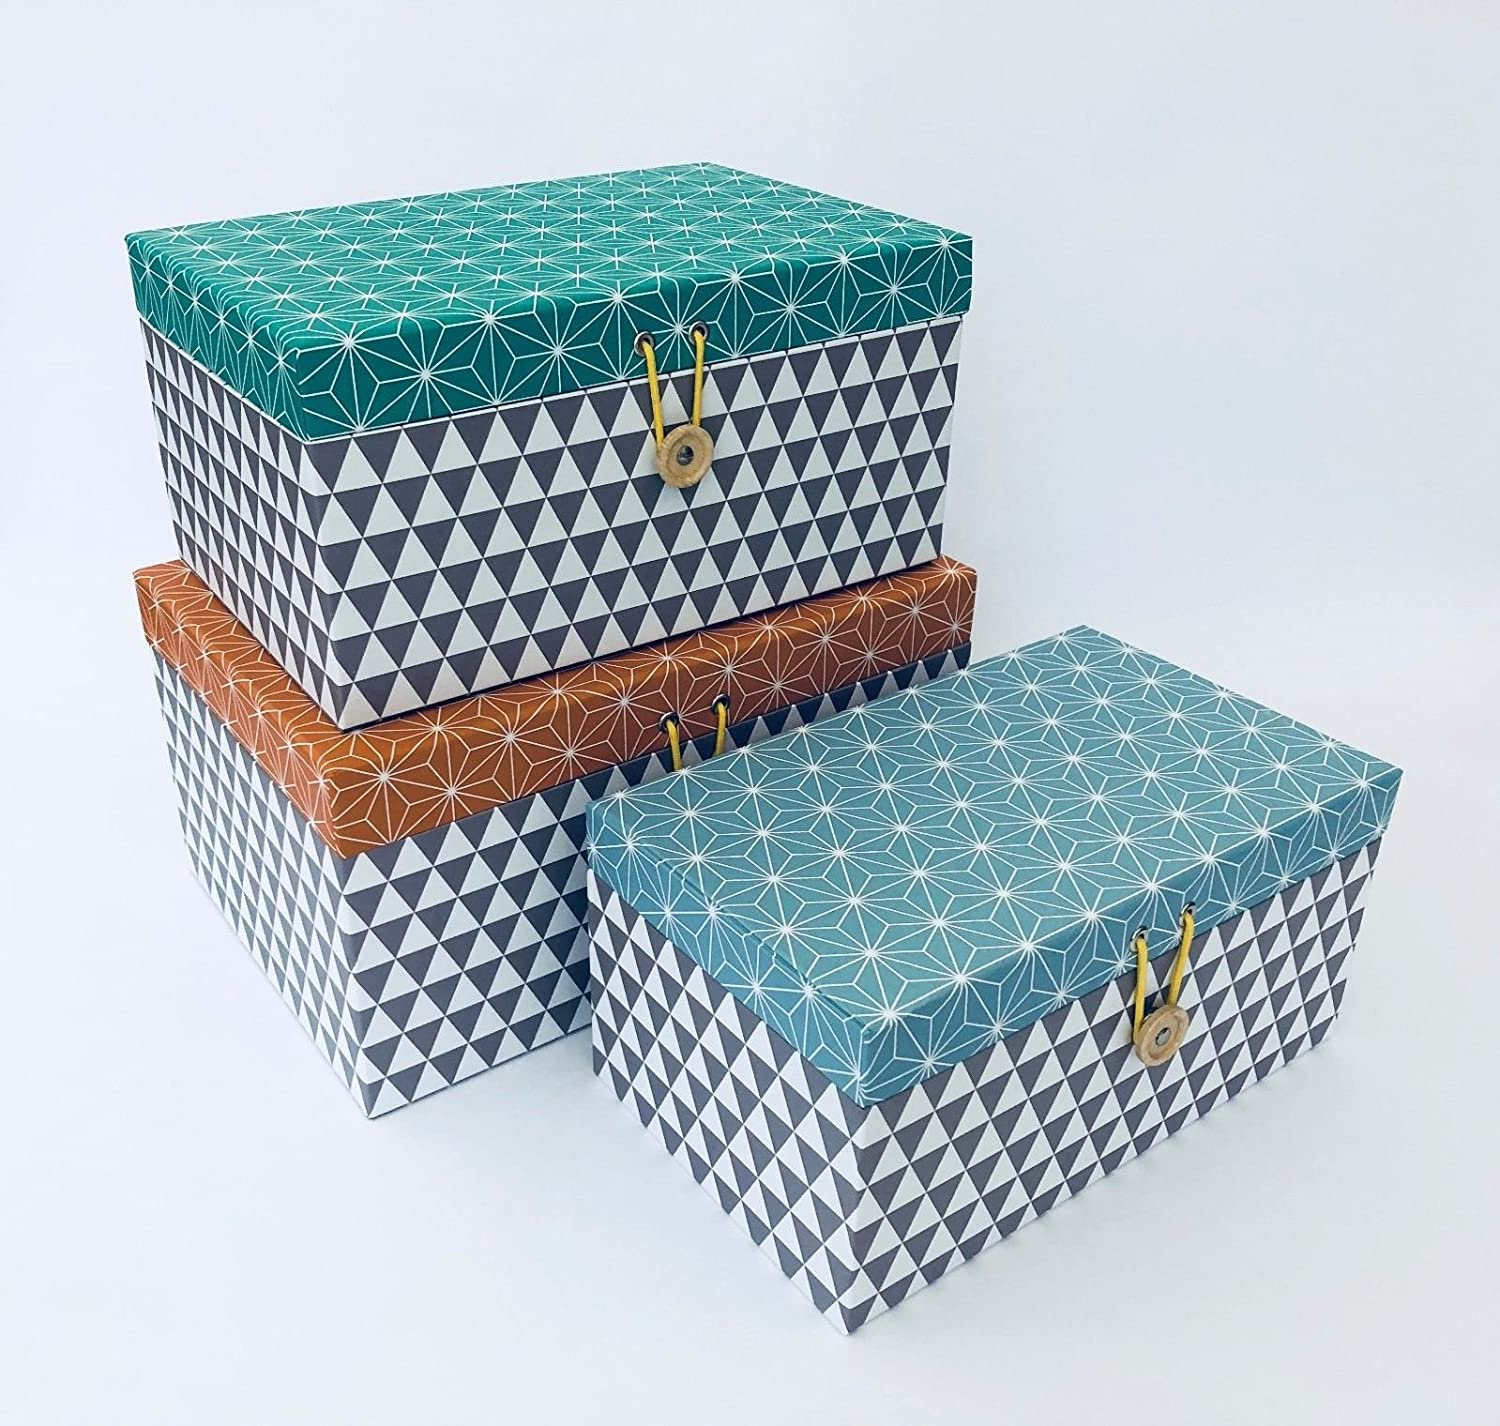 Homes on Trend Pack Of 7 Rectangular Storage Boxes With Lids Retro  Decorative Geometric Design Cardboard Home Office Bedroom Wardrobe  Organiser Box